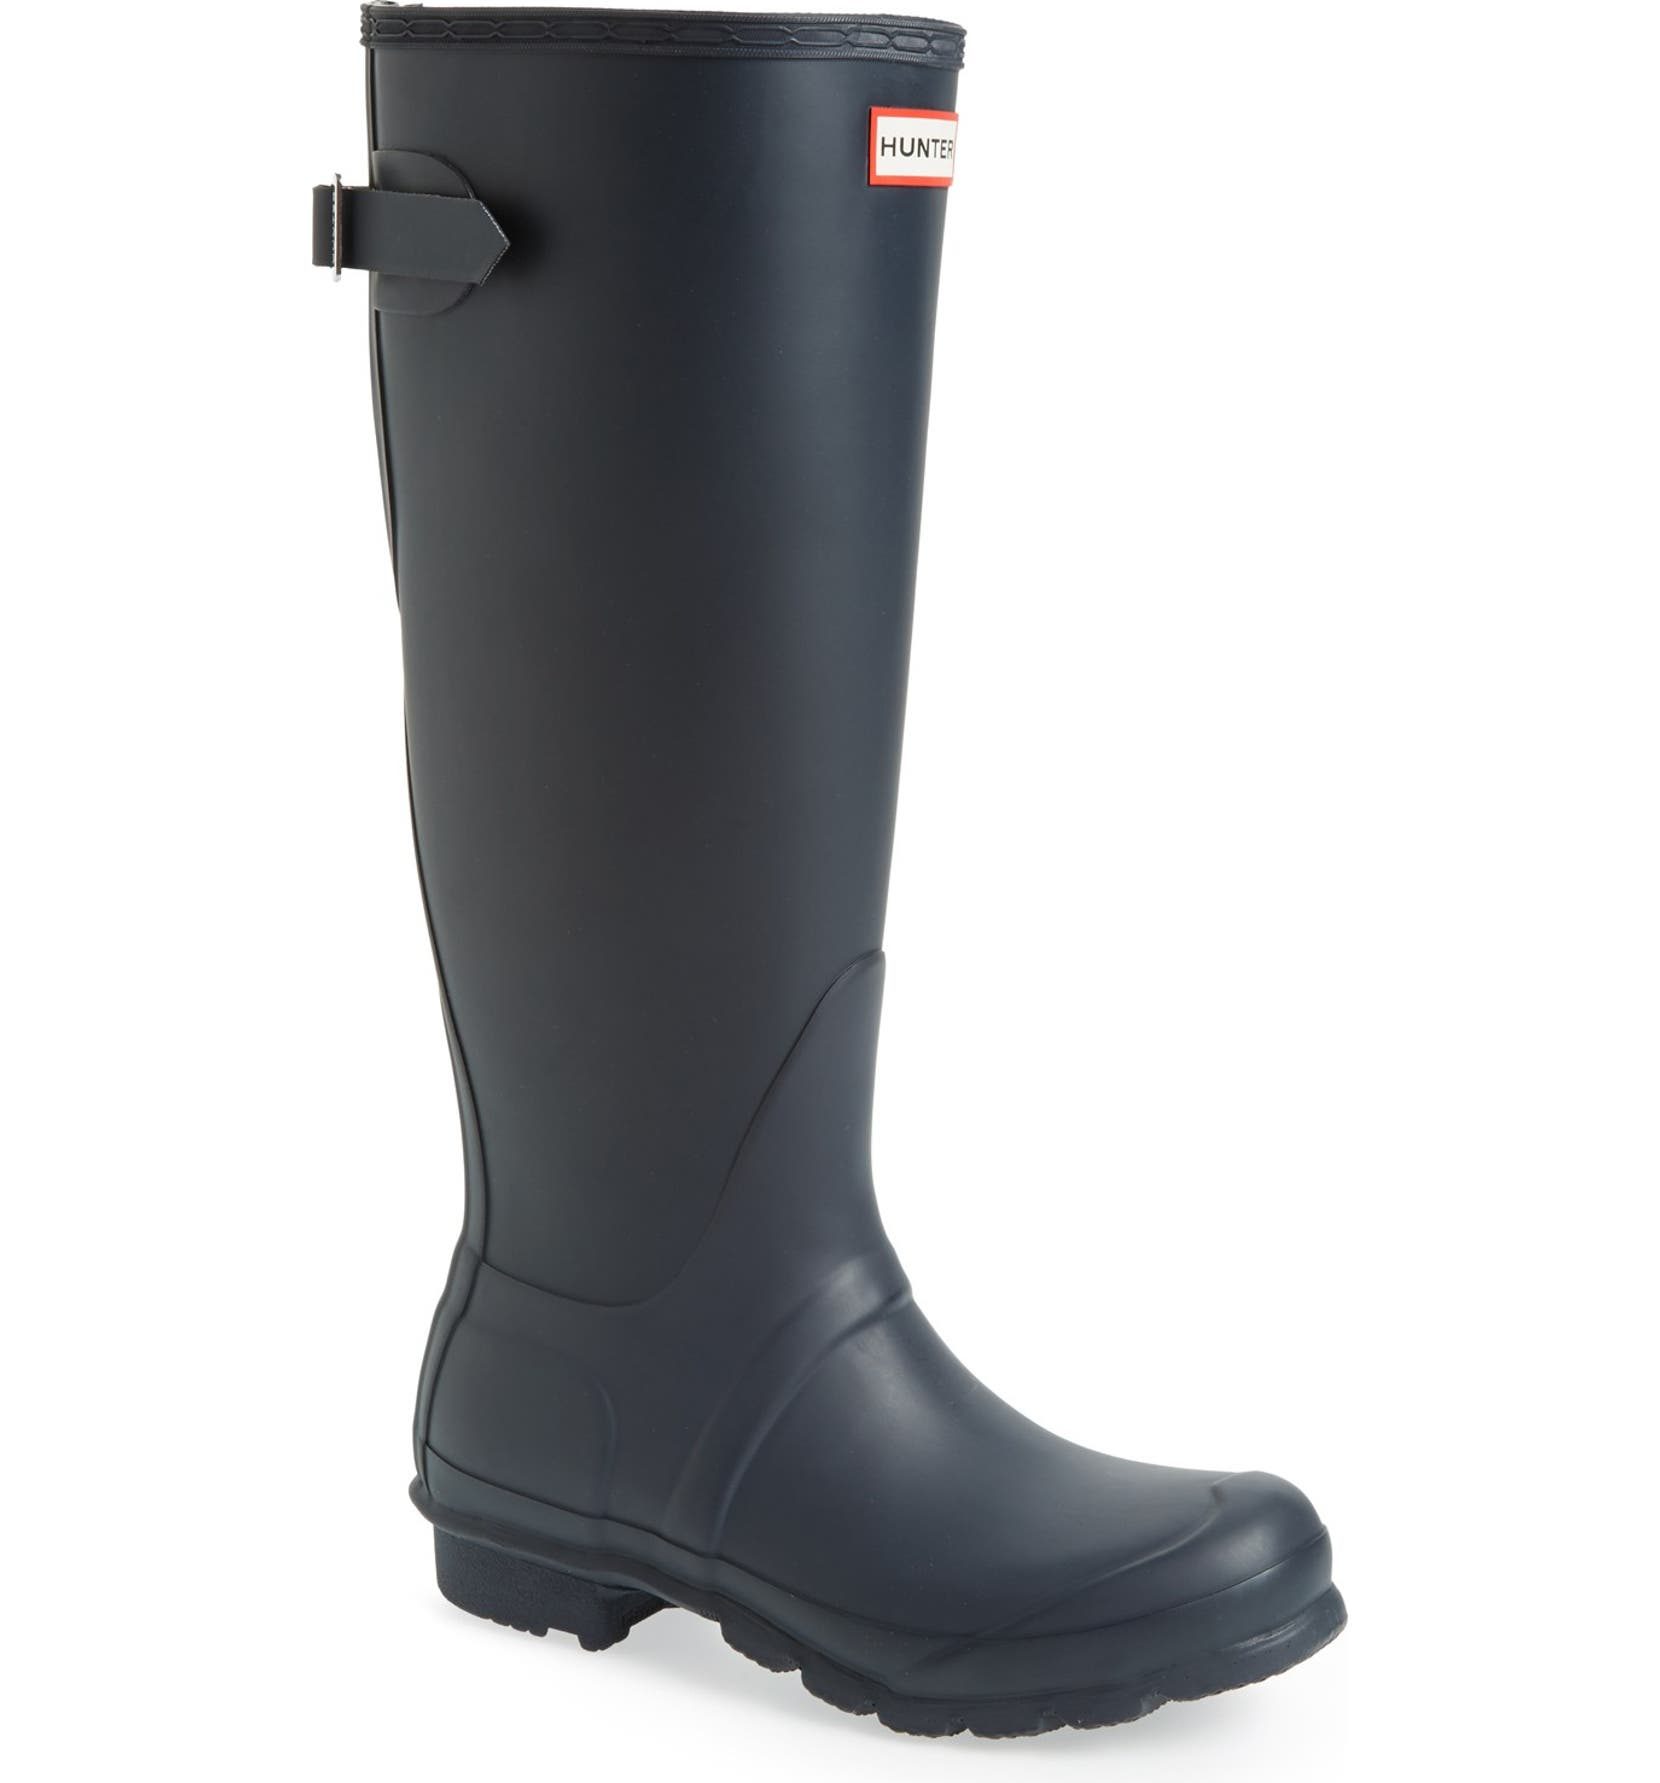 102a2c8dc74 Original Tall Adjustable Back Waterproof Rain Boot